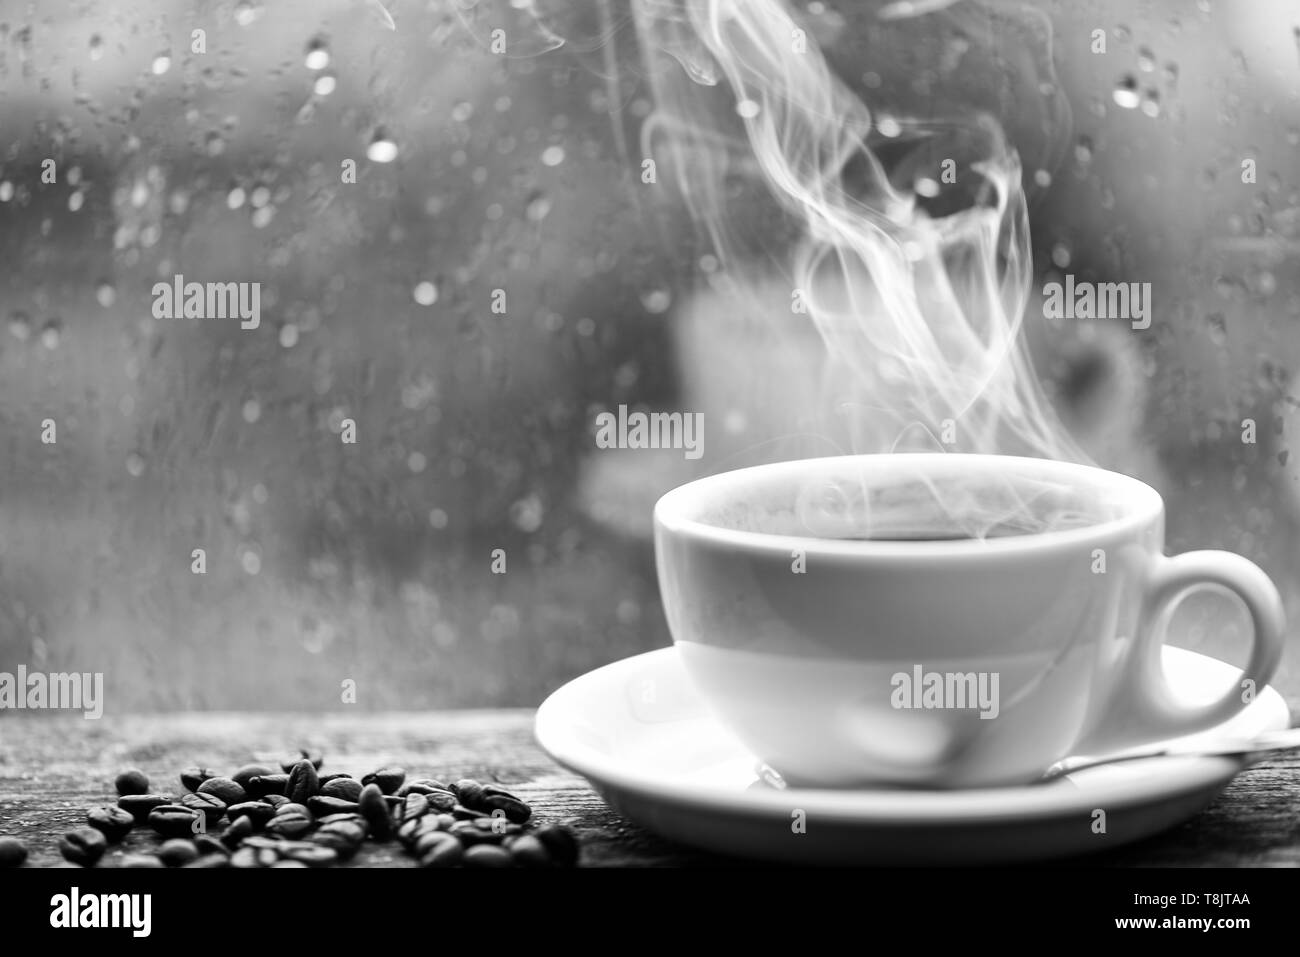 Wet glass window and cup of hot coffee. Autumn cloudy weather better with caffeine drink. Enjoying coffee on rainy day. Coffee morning ritual. Fresh brewed coffee white mug and beans on windowsill. - Stock Image